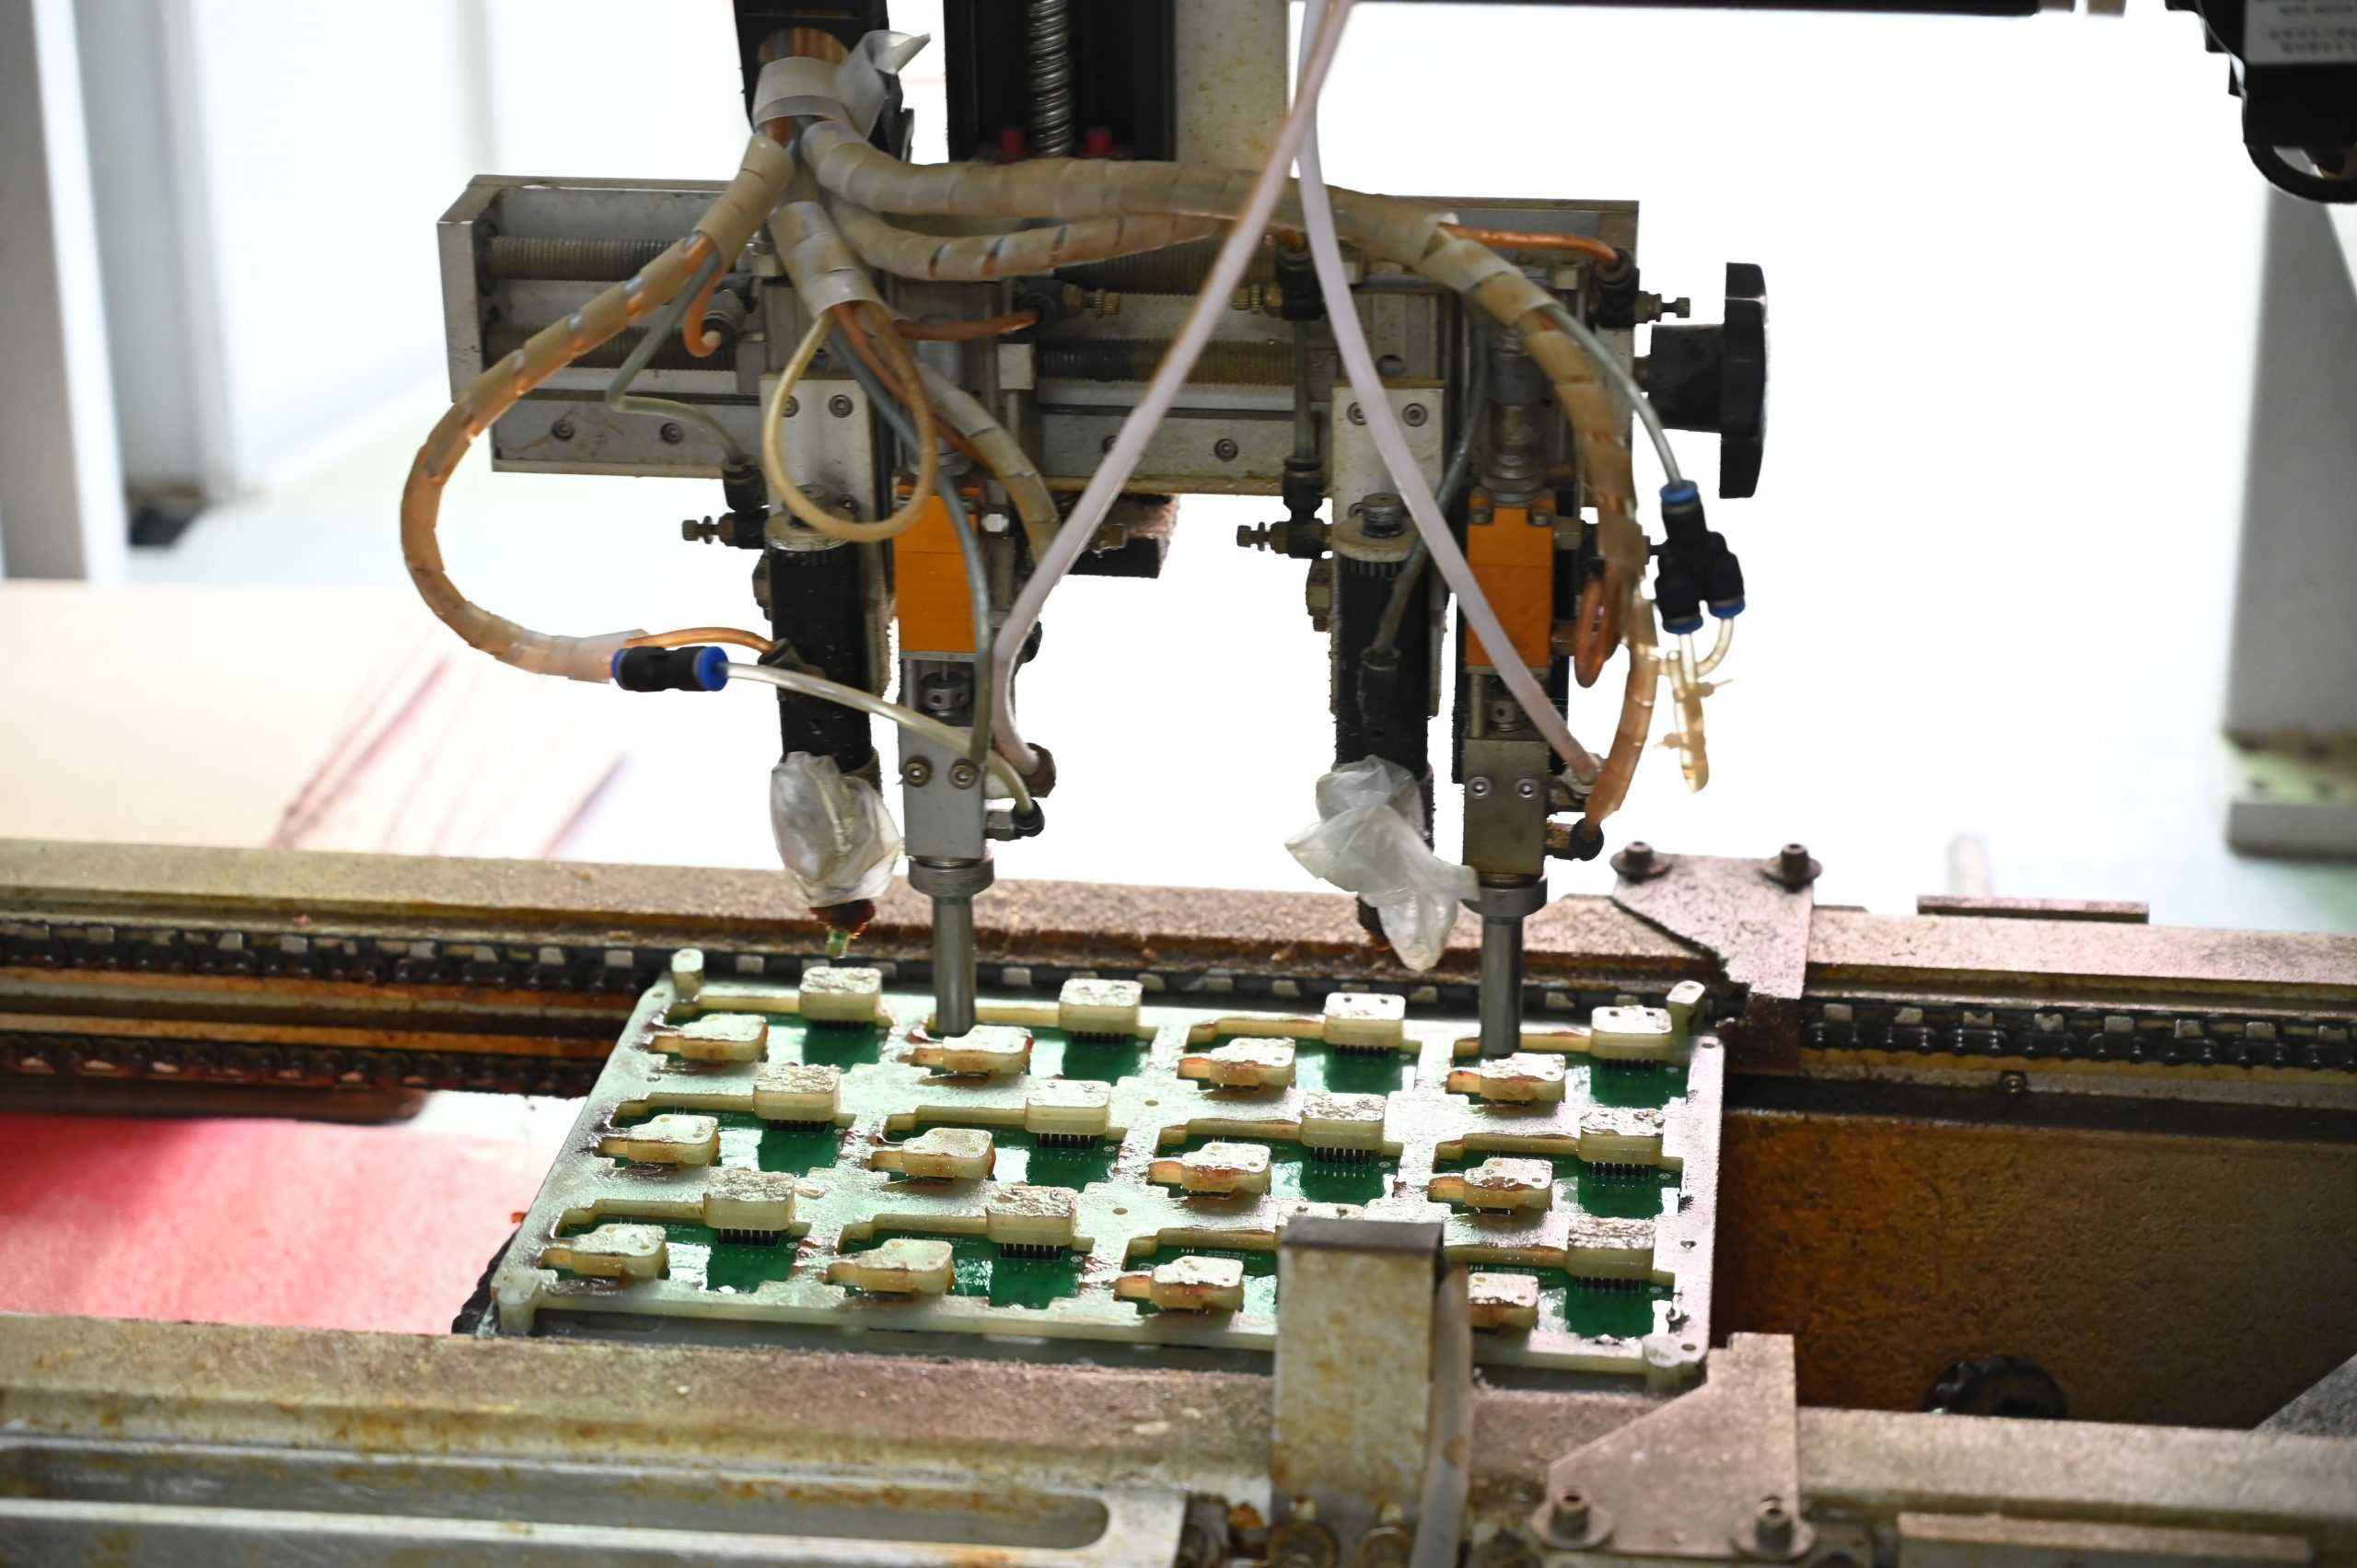 PCB assembly prototyping